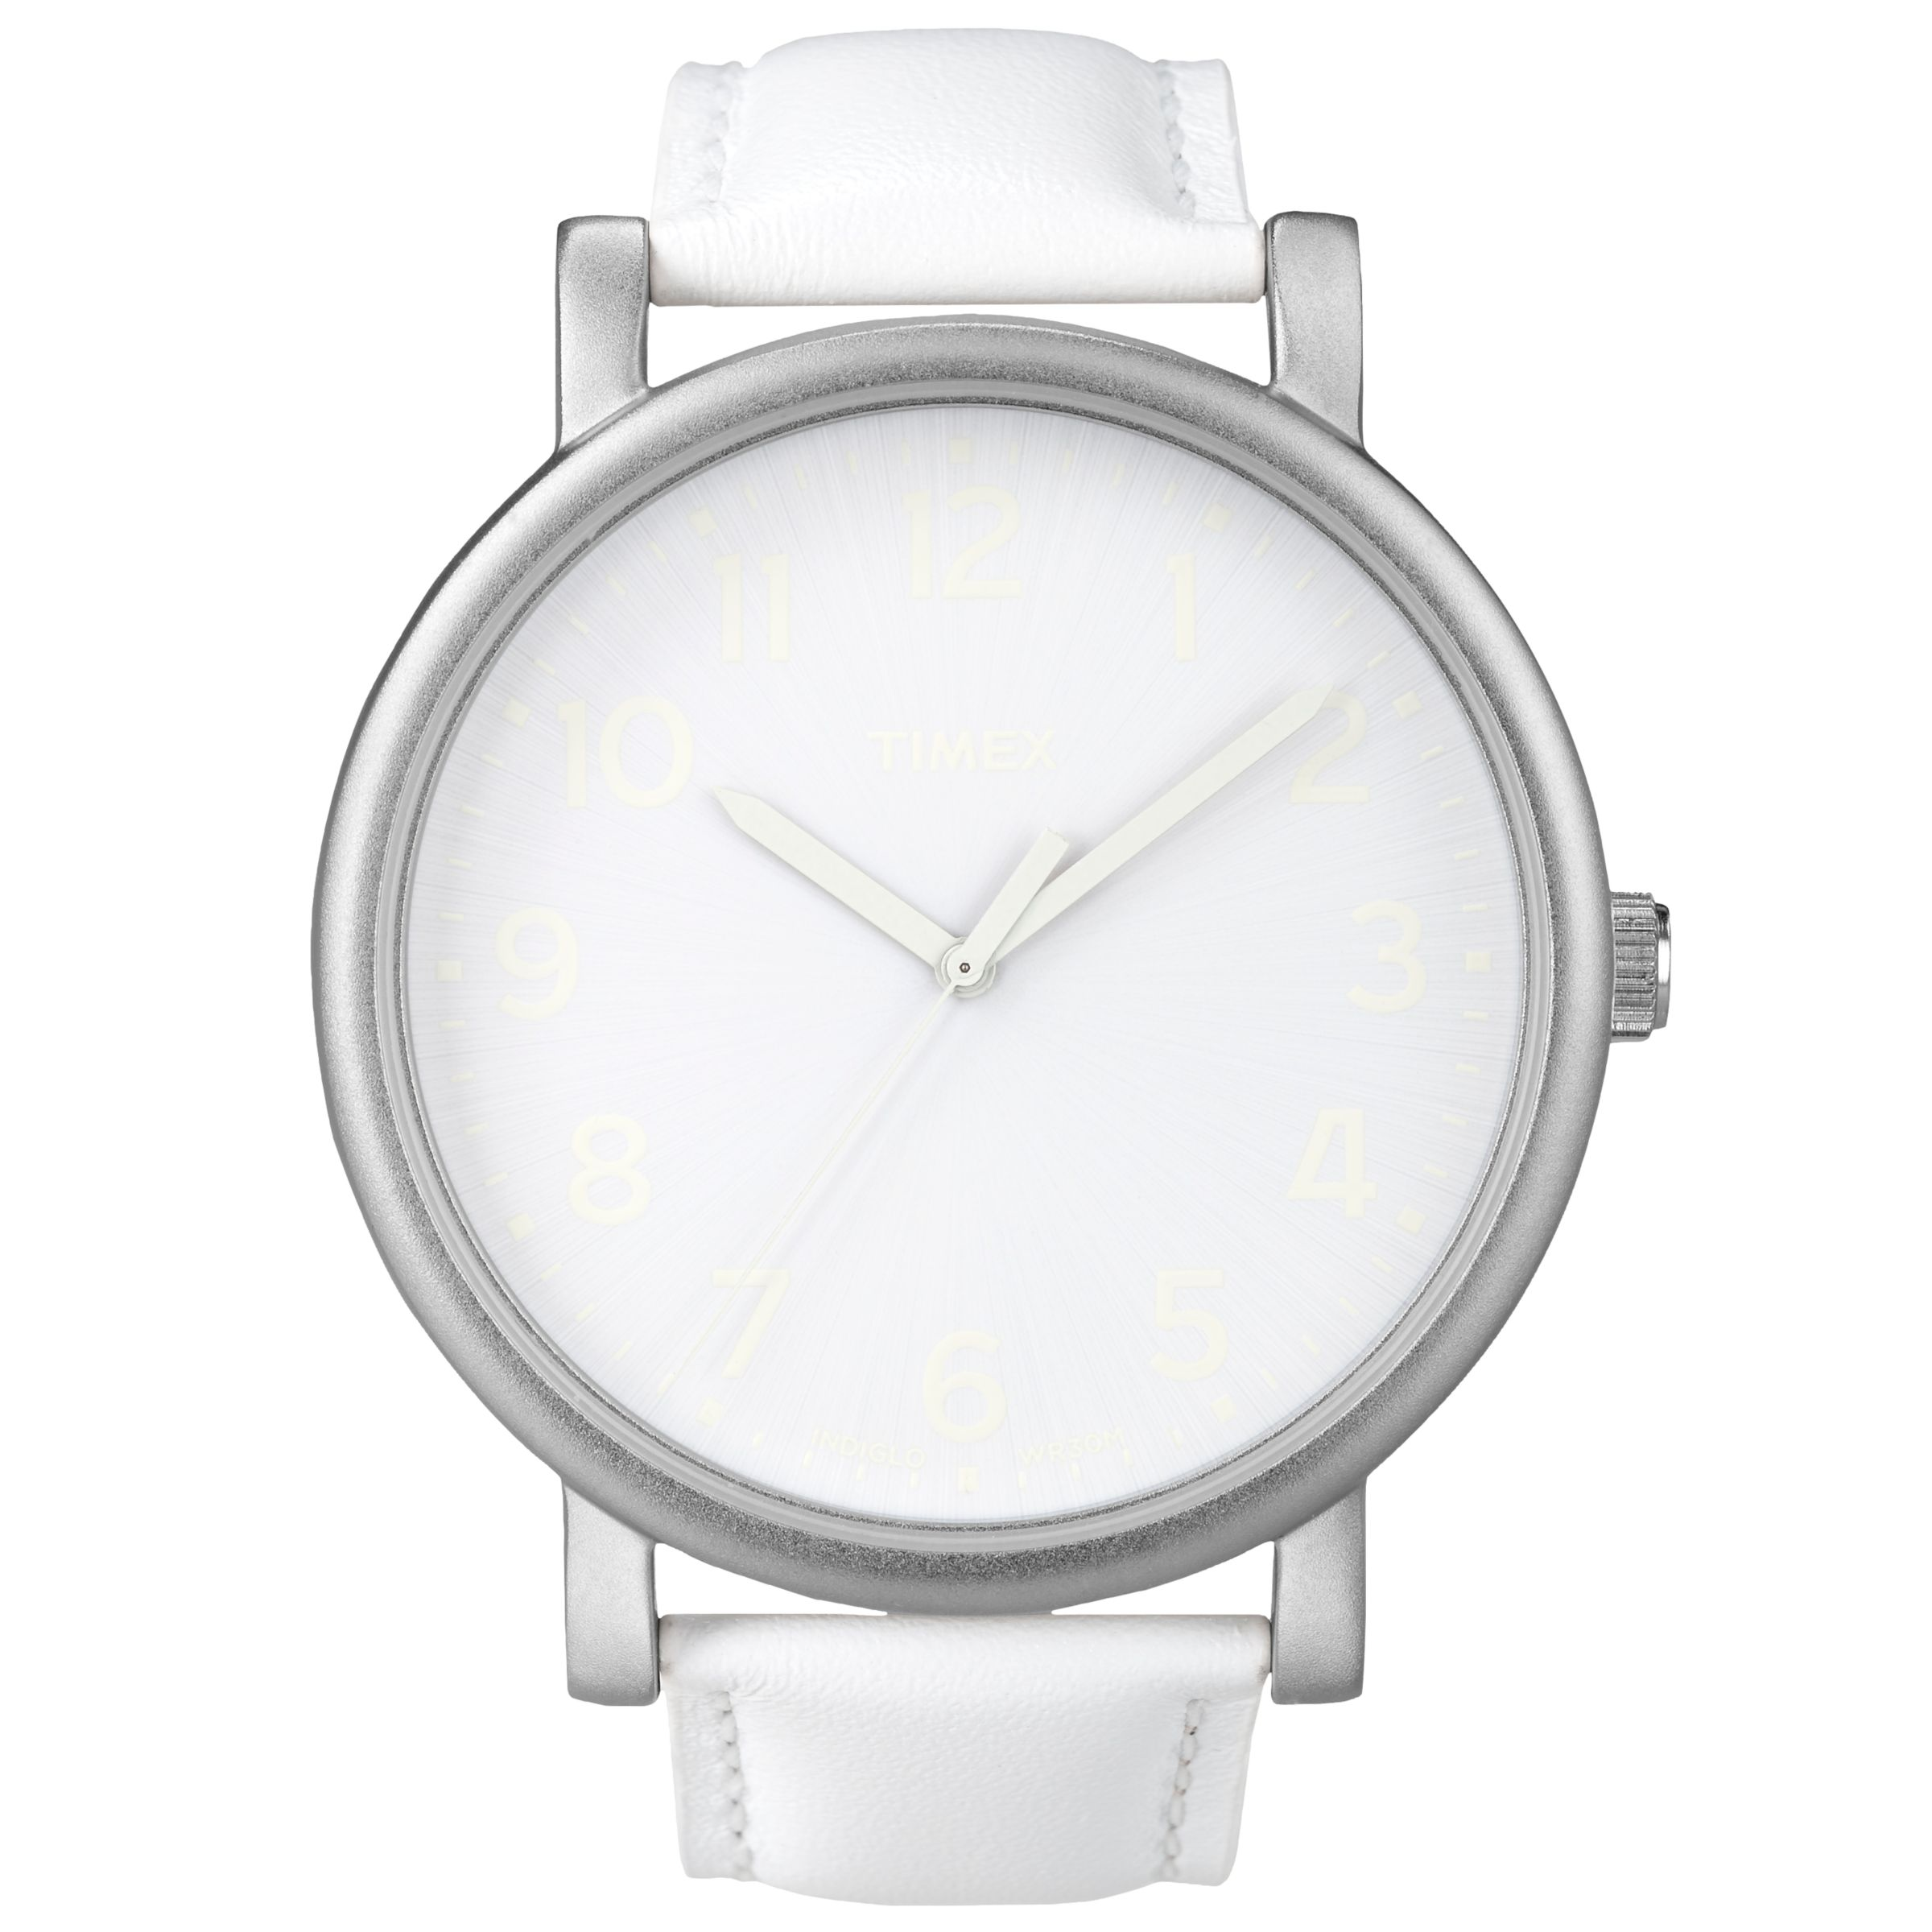 Timex T2N345 Unisex Classic Large Round White Dial White Leather Strap Watch